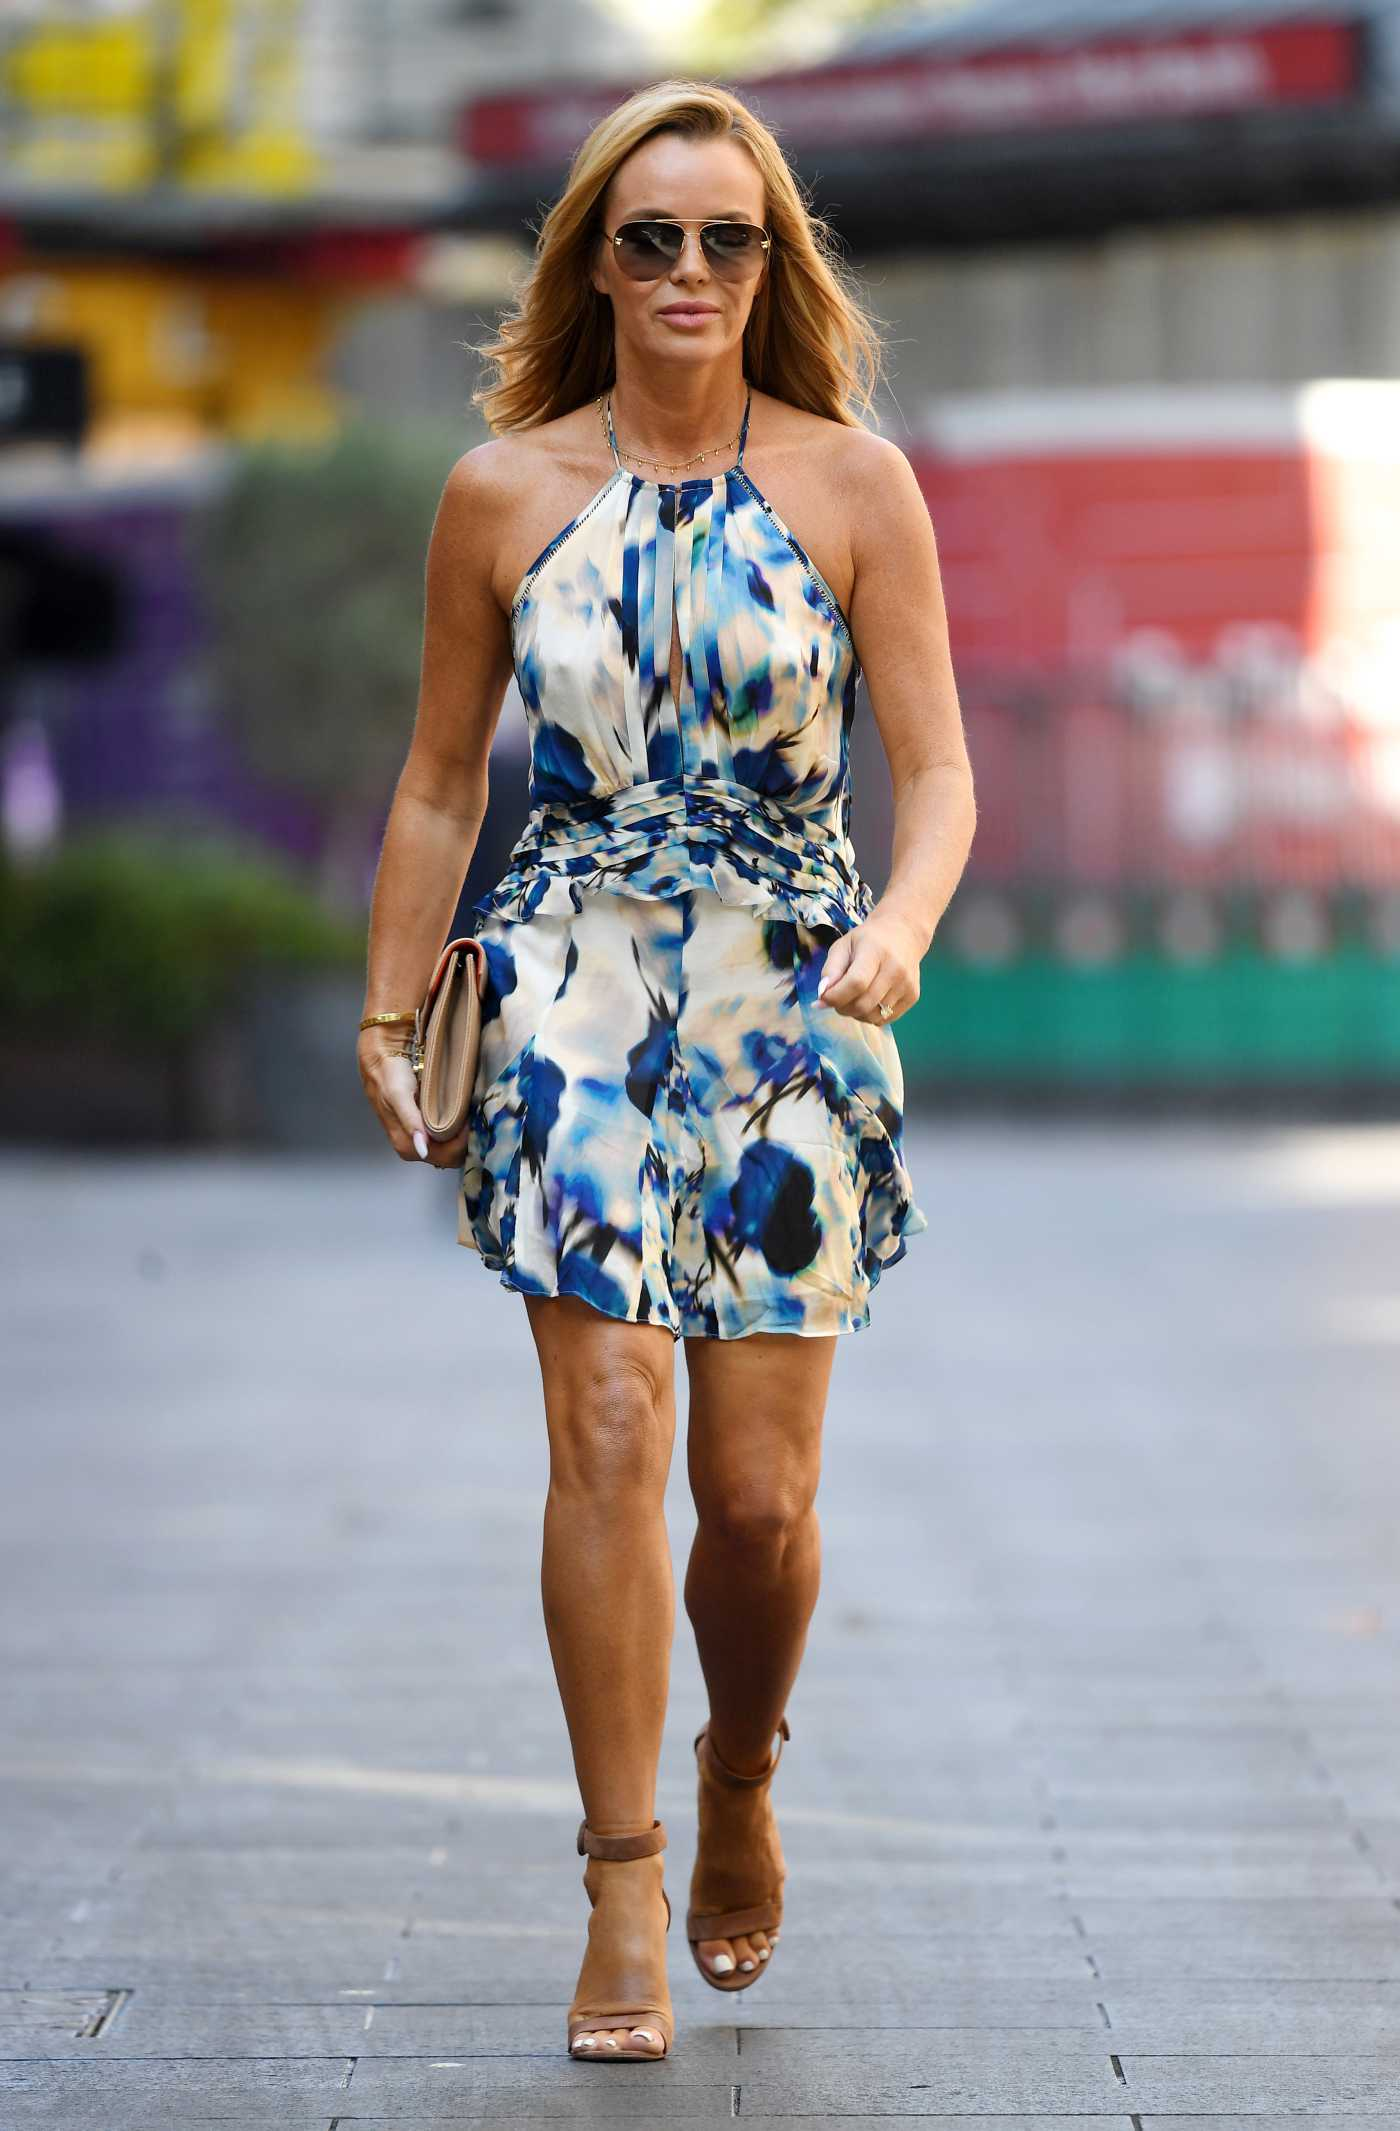 Amanda Holden in a Blue Floral Mini Dress Leaves the Global Radio Studios in London 09/08/2021